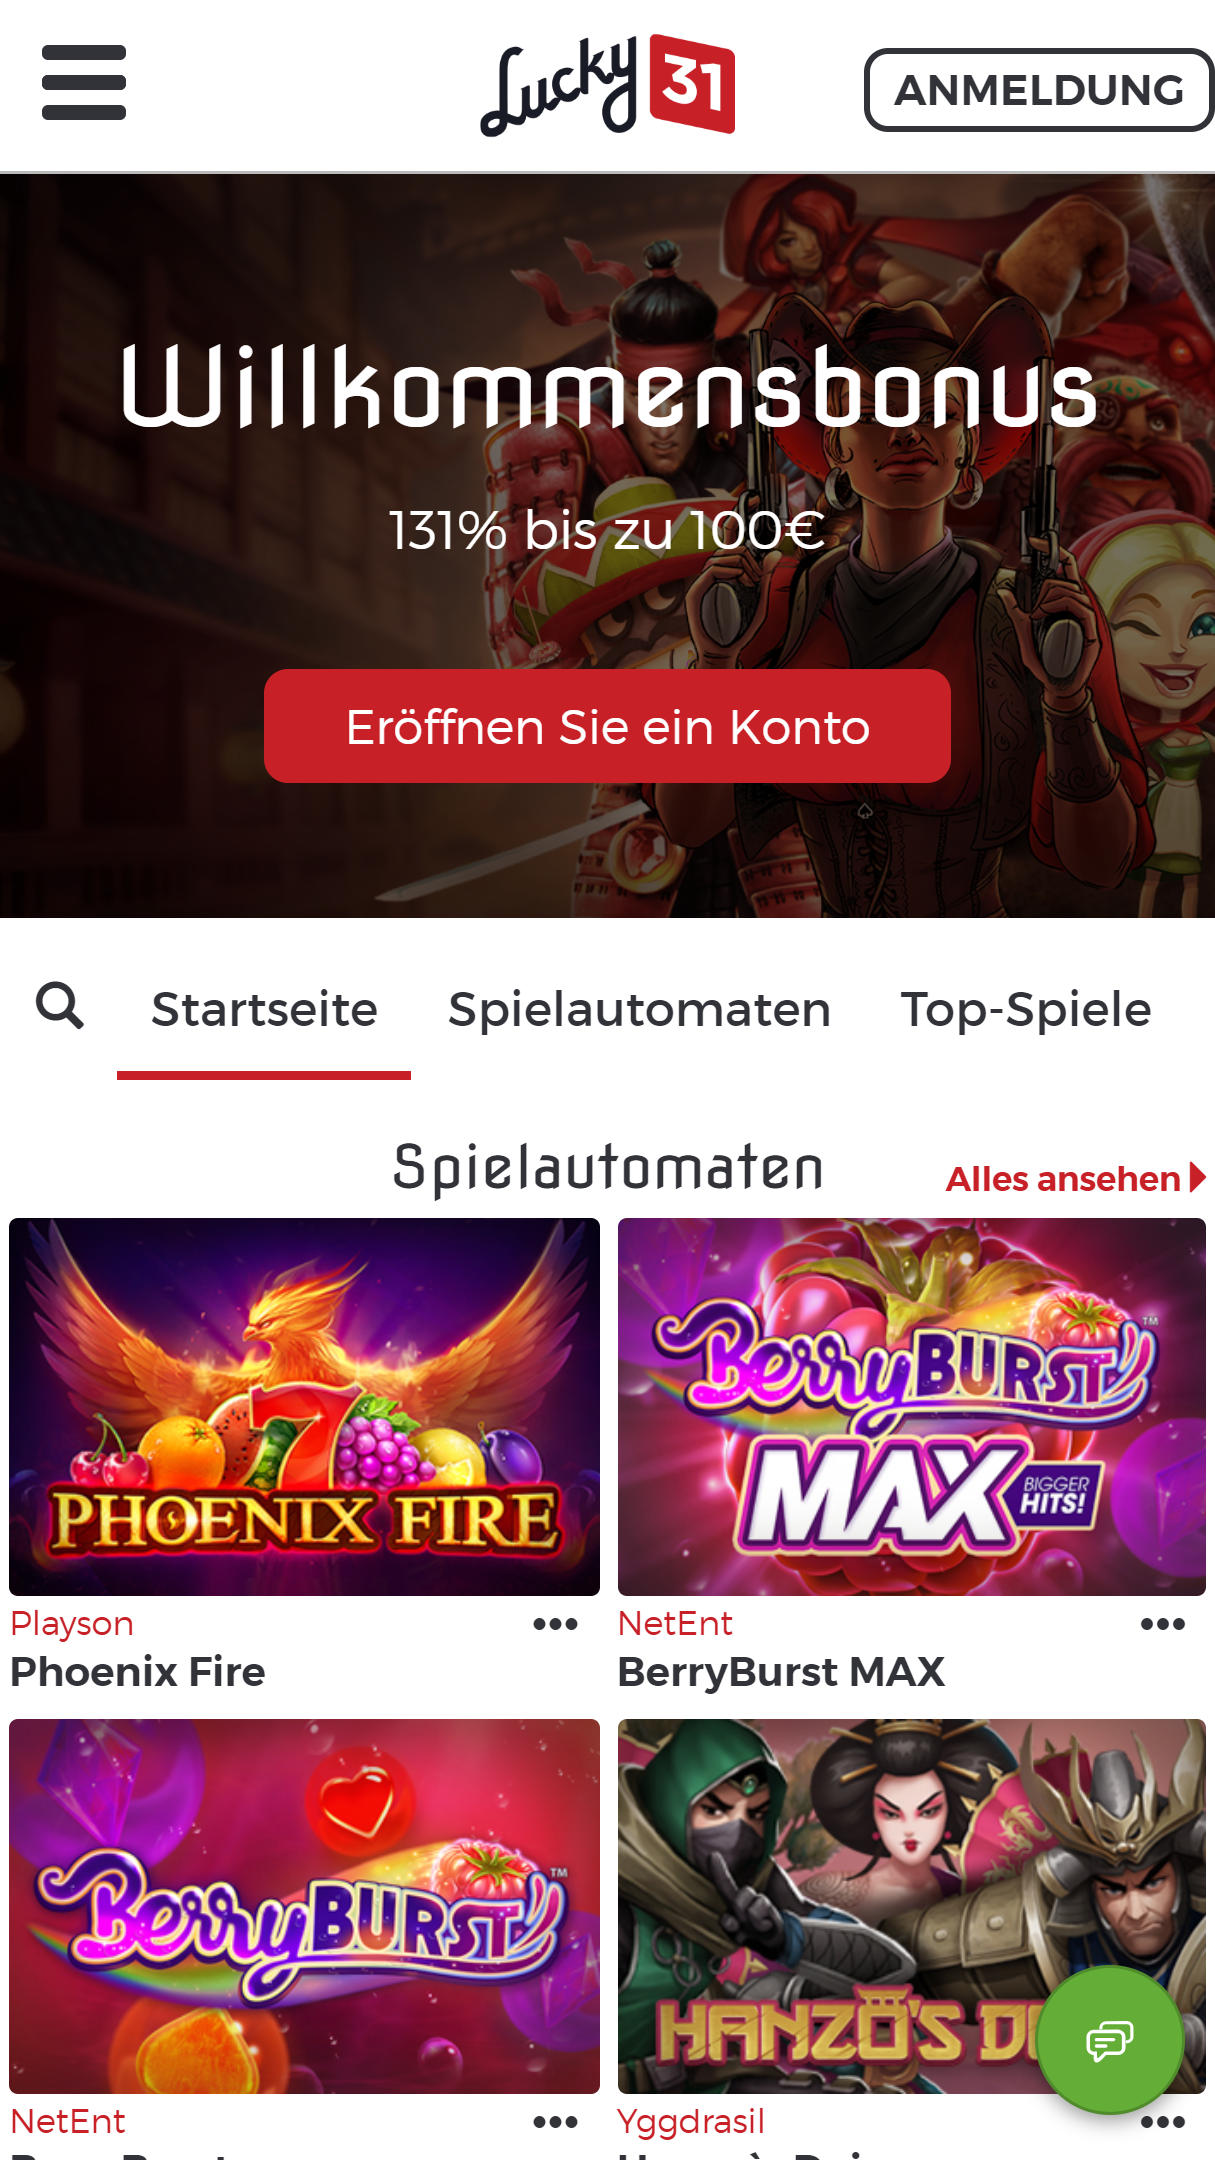 Lucky31 Casino App Homepage